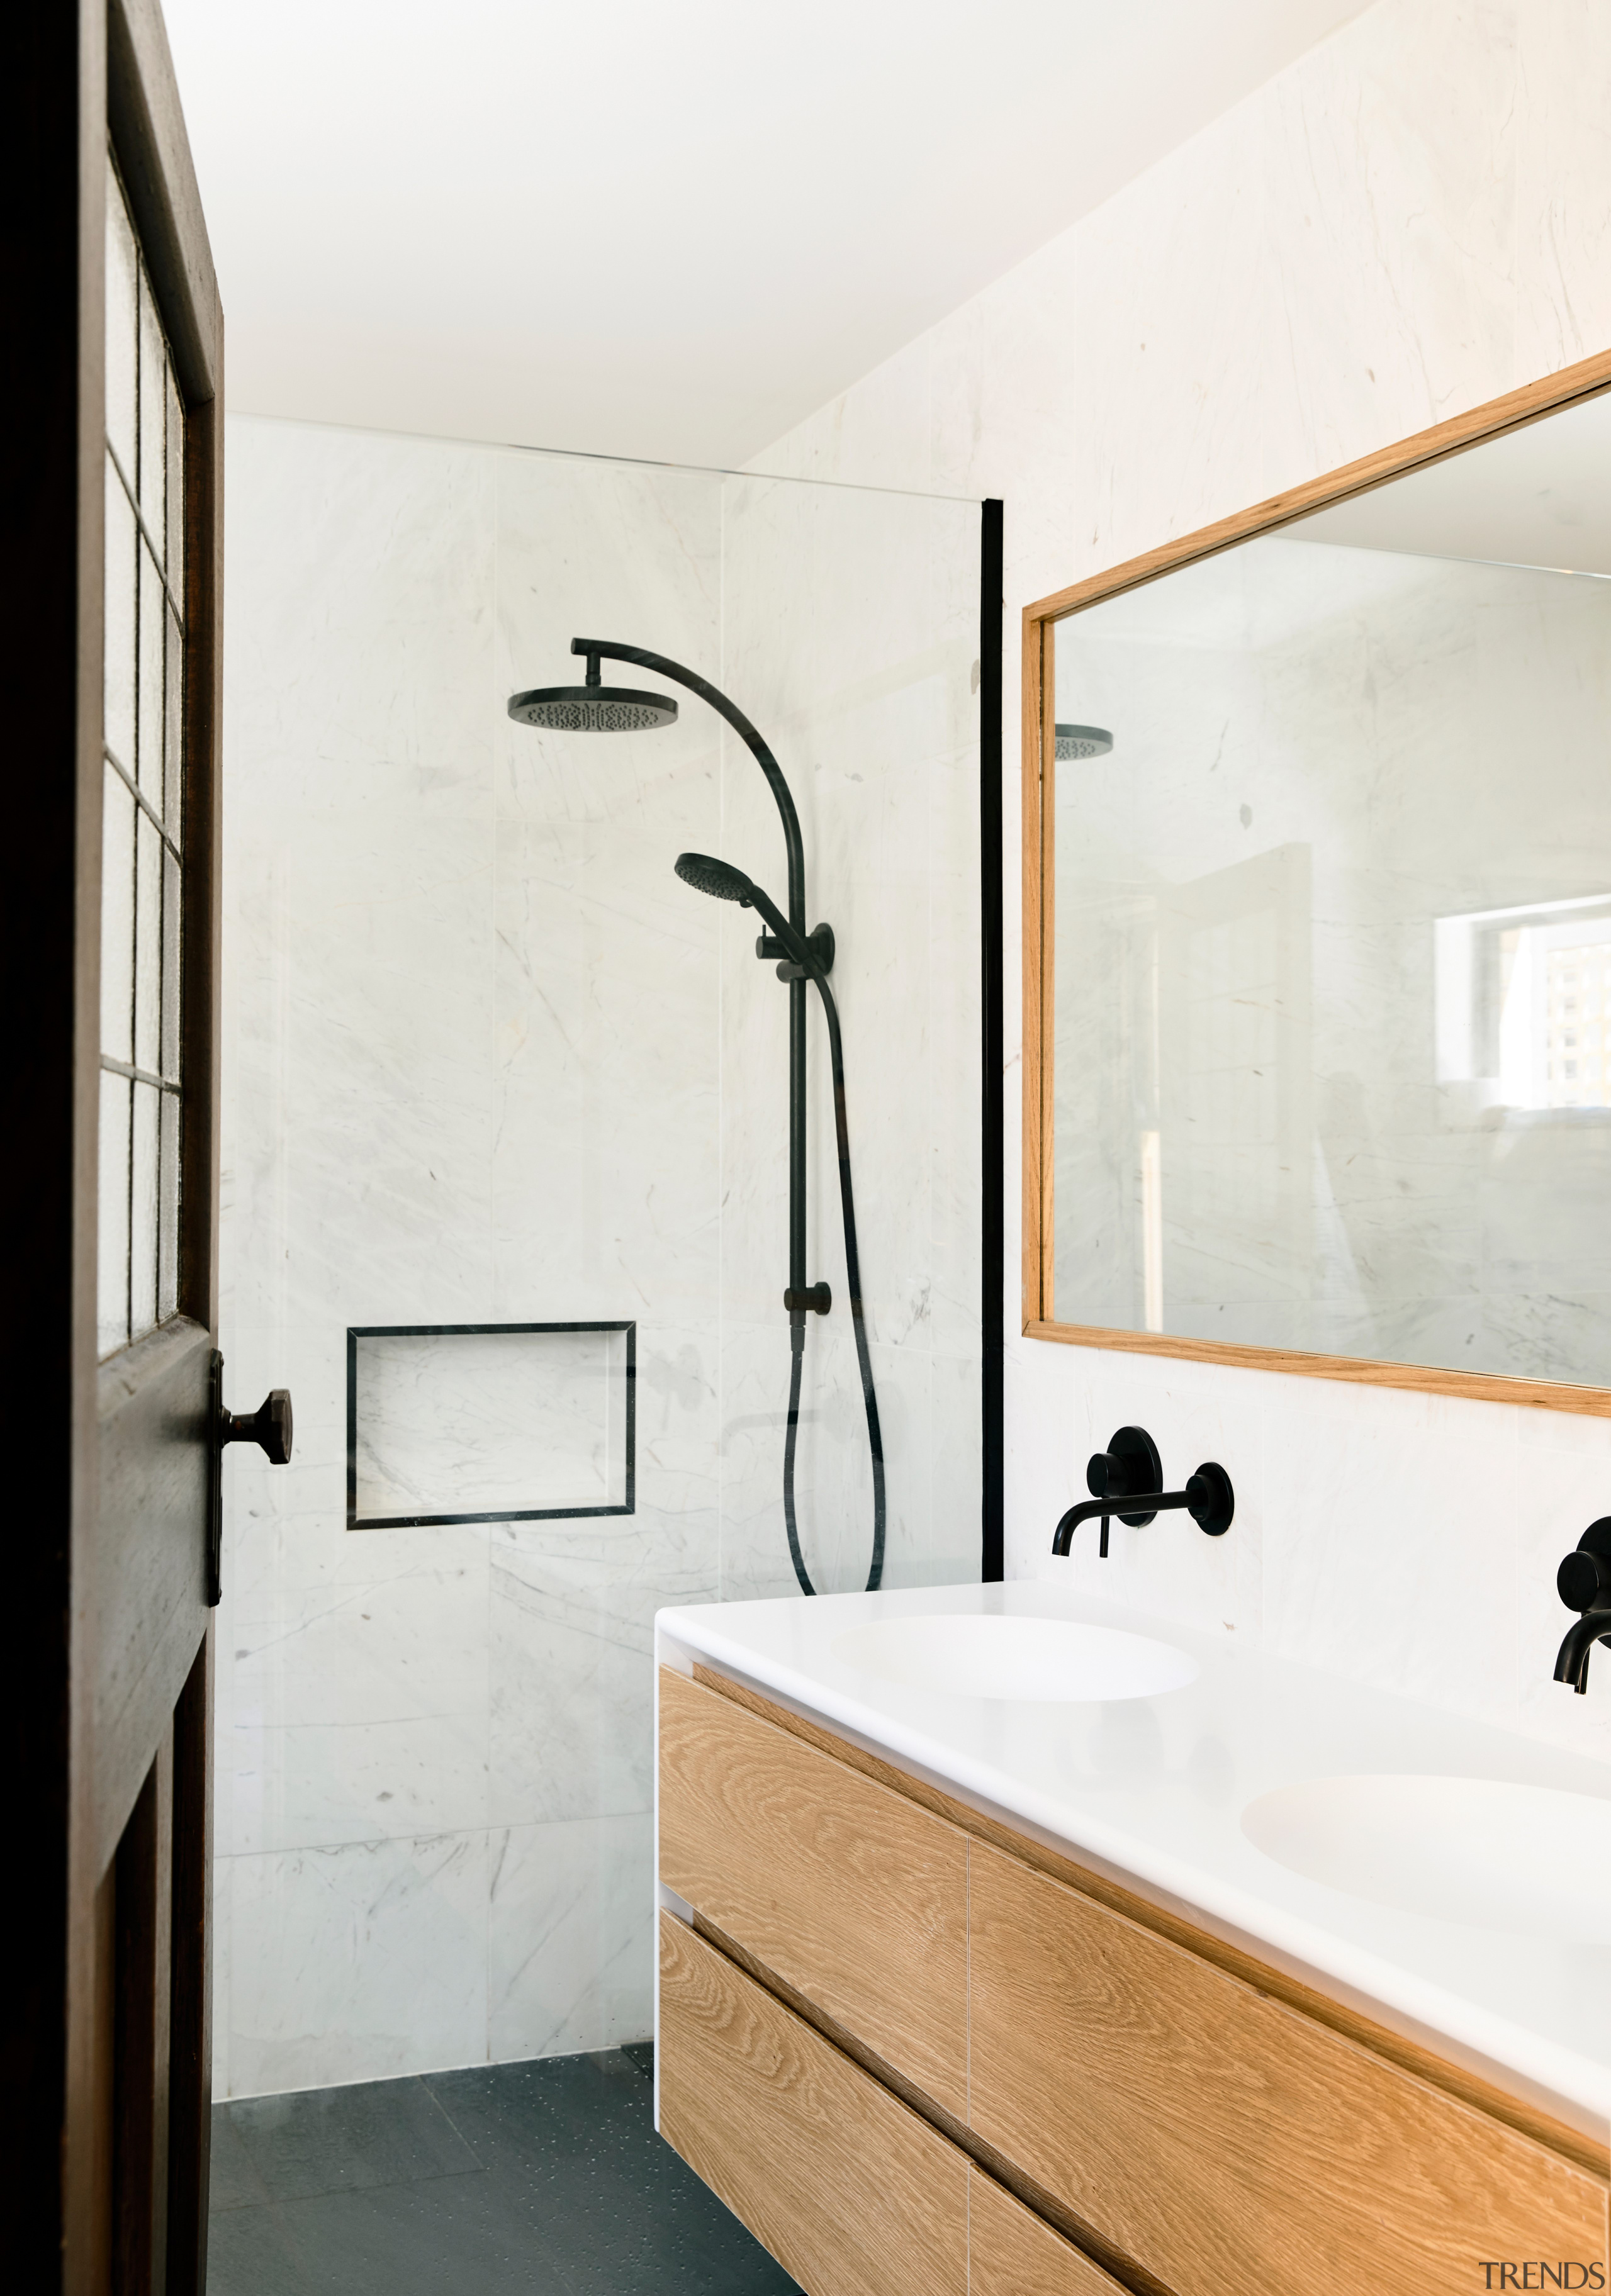 Existing bedrooms were given contemporary ensuite bathrooms, complete architecture, bathroom, home, interior design, plumbing fixture, tap, wall, white, ensuite, Porter Architecture, black hardware